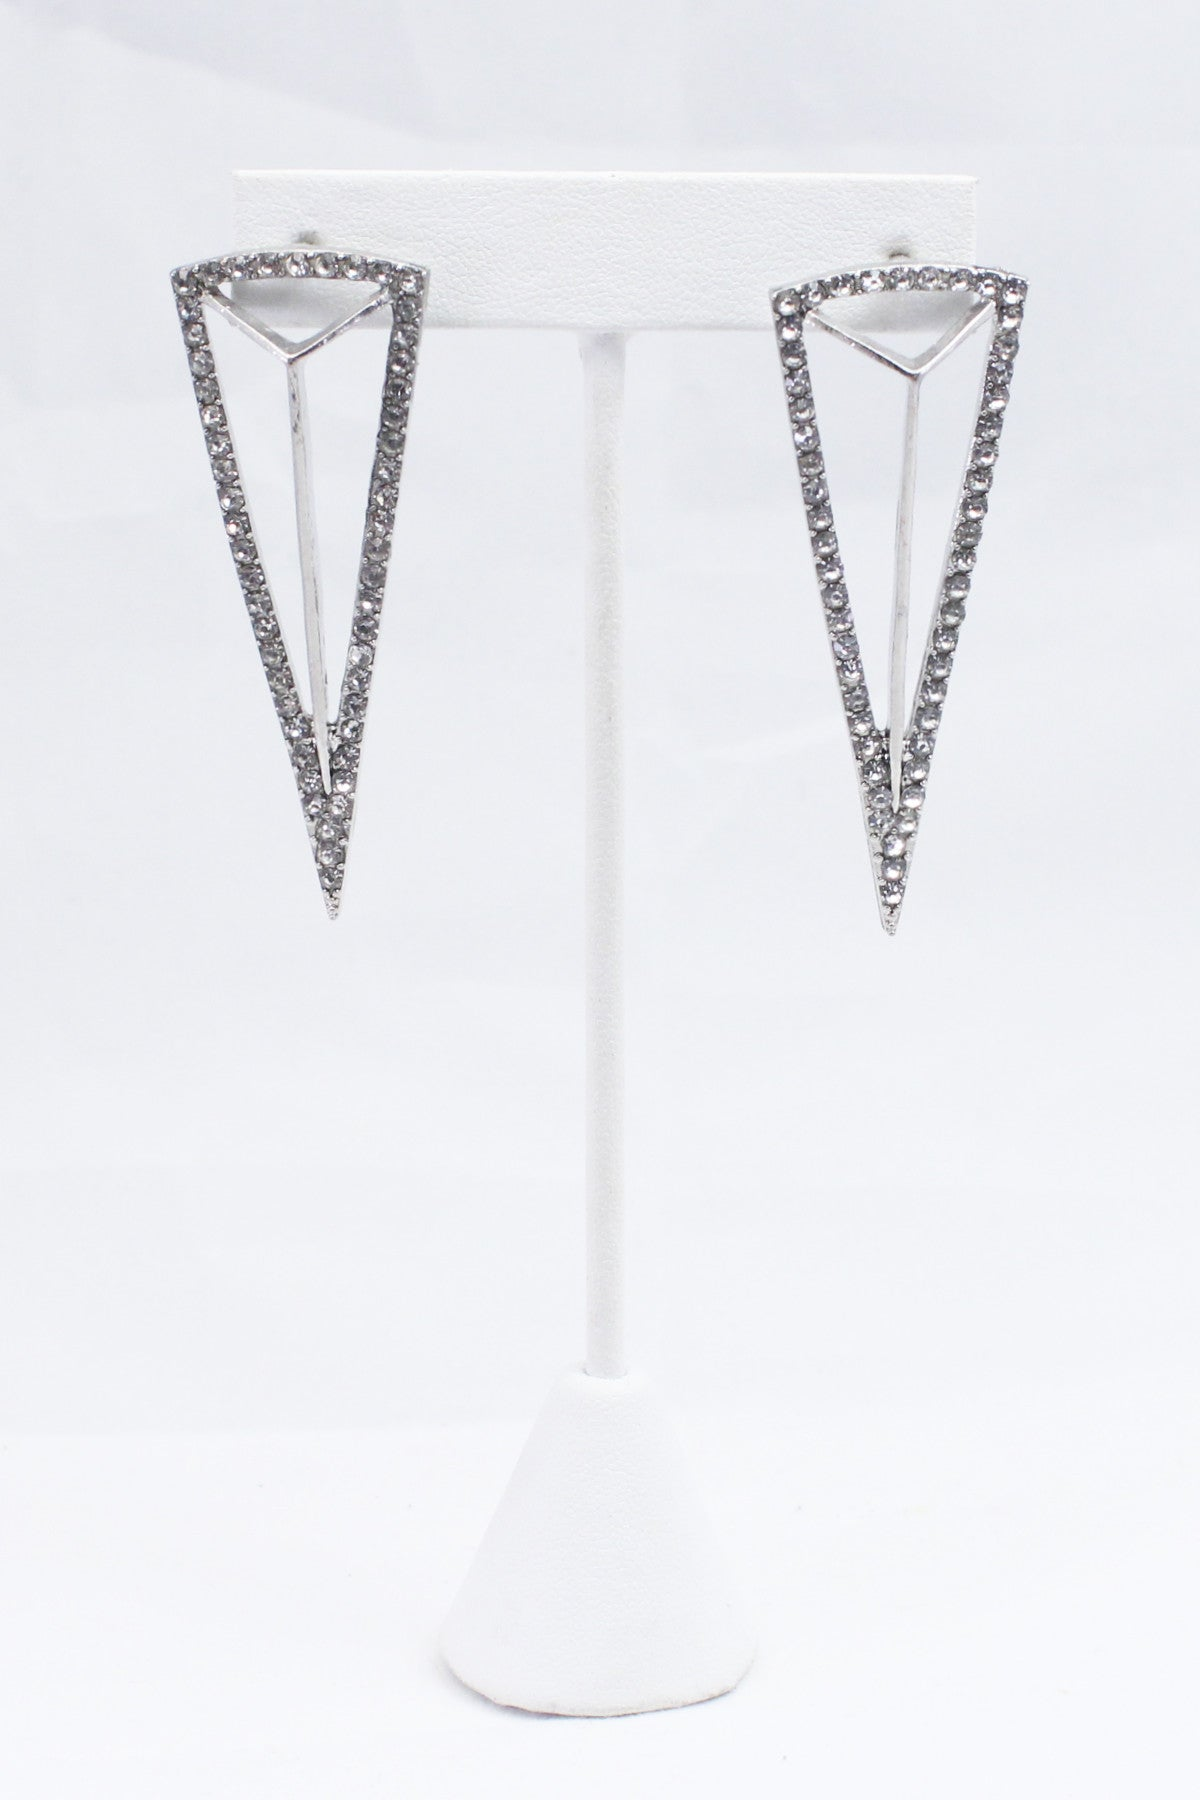 Platinum Arrowhead Earrings